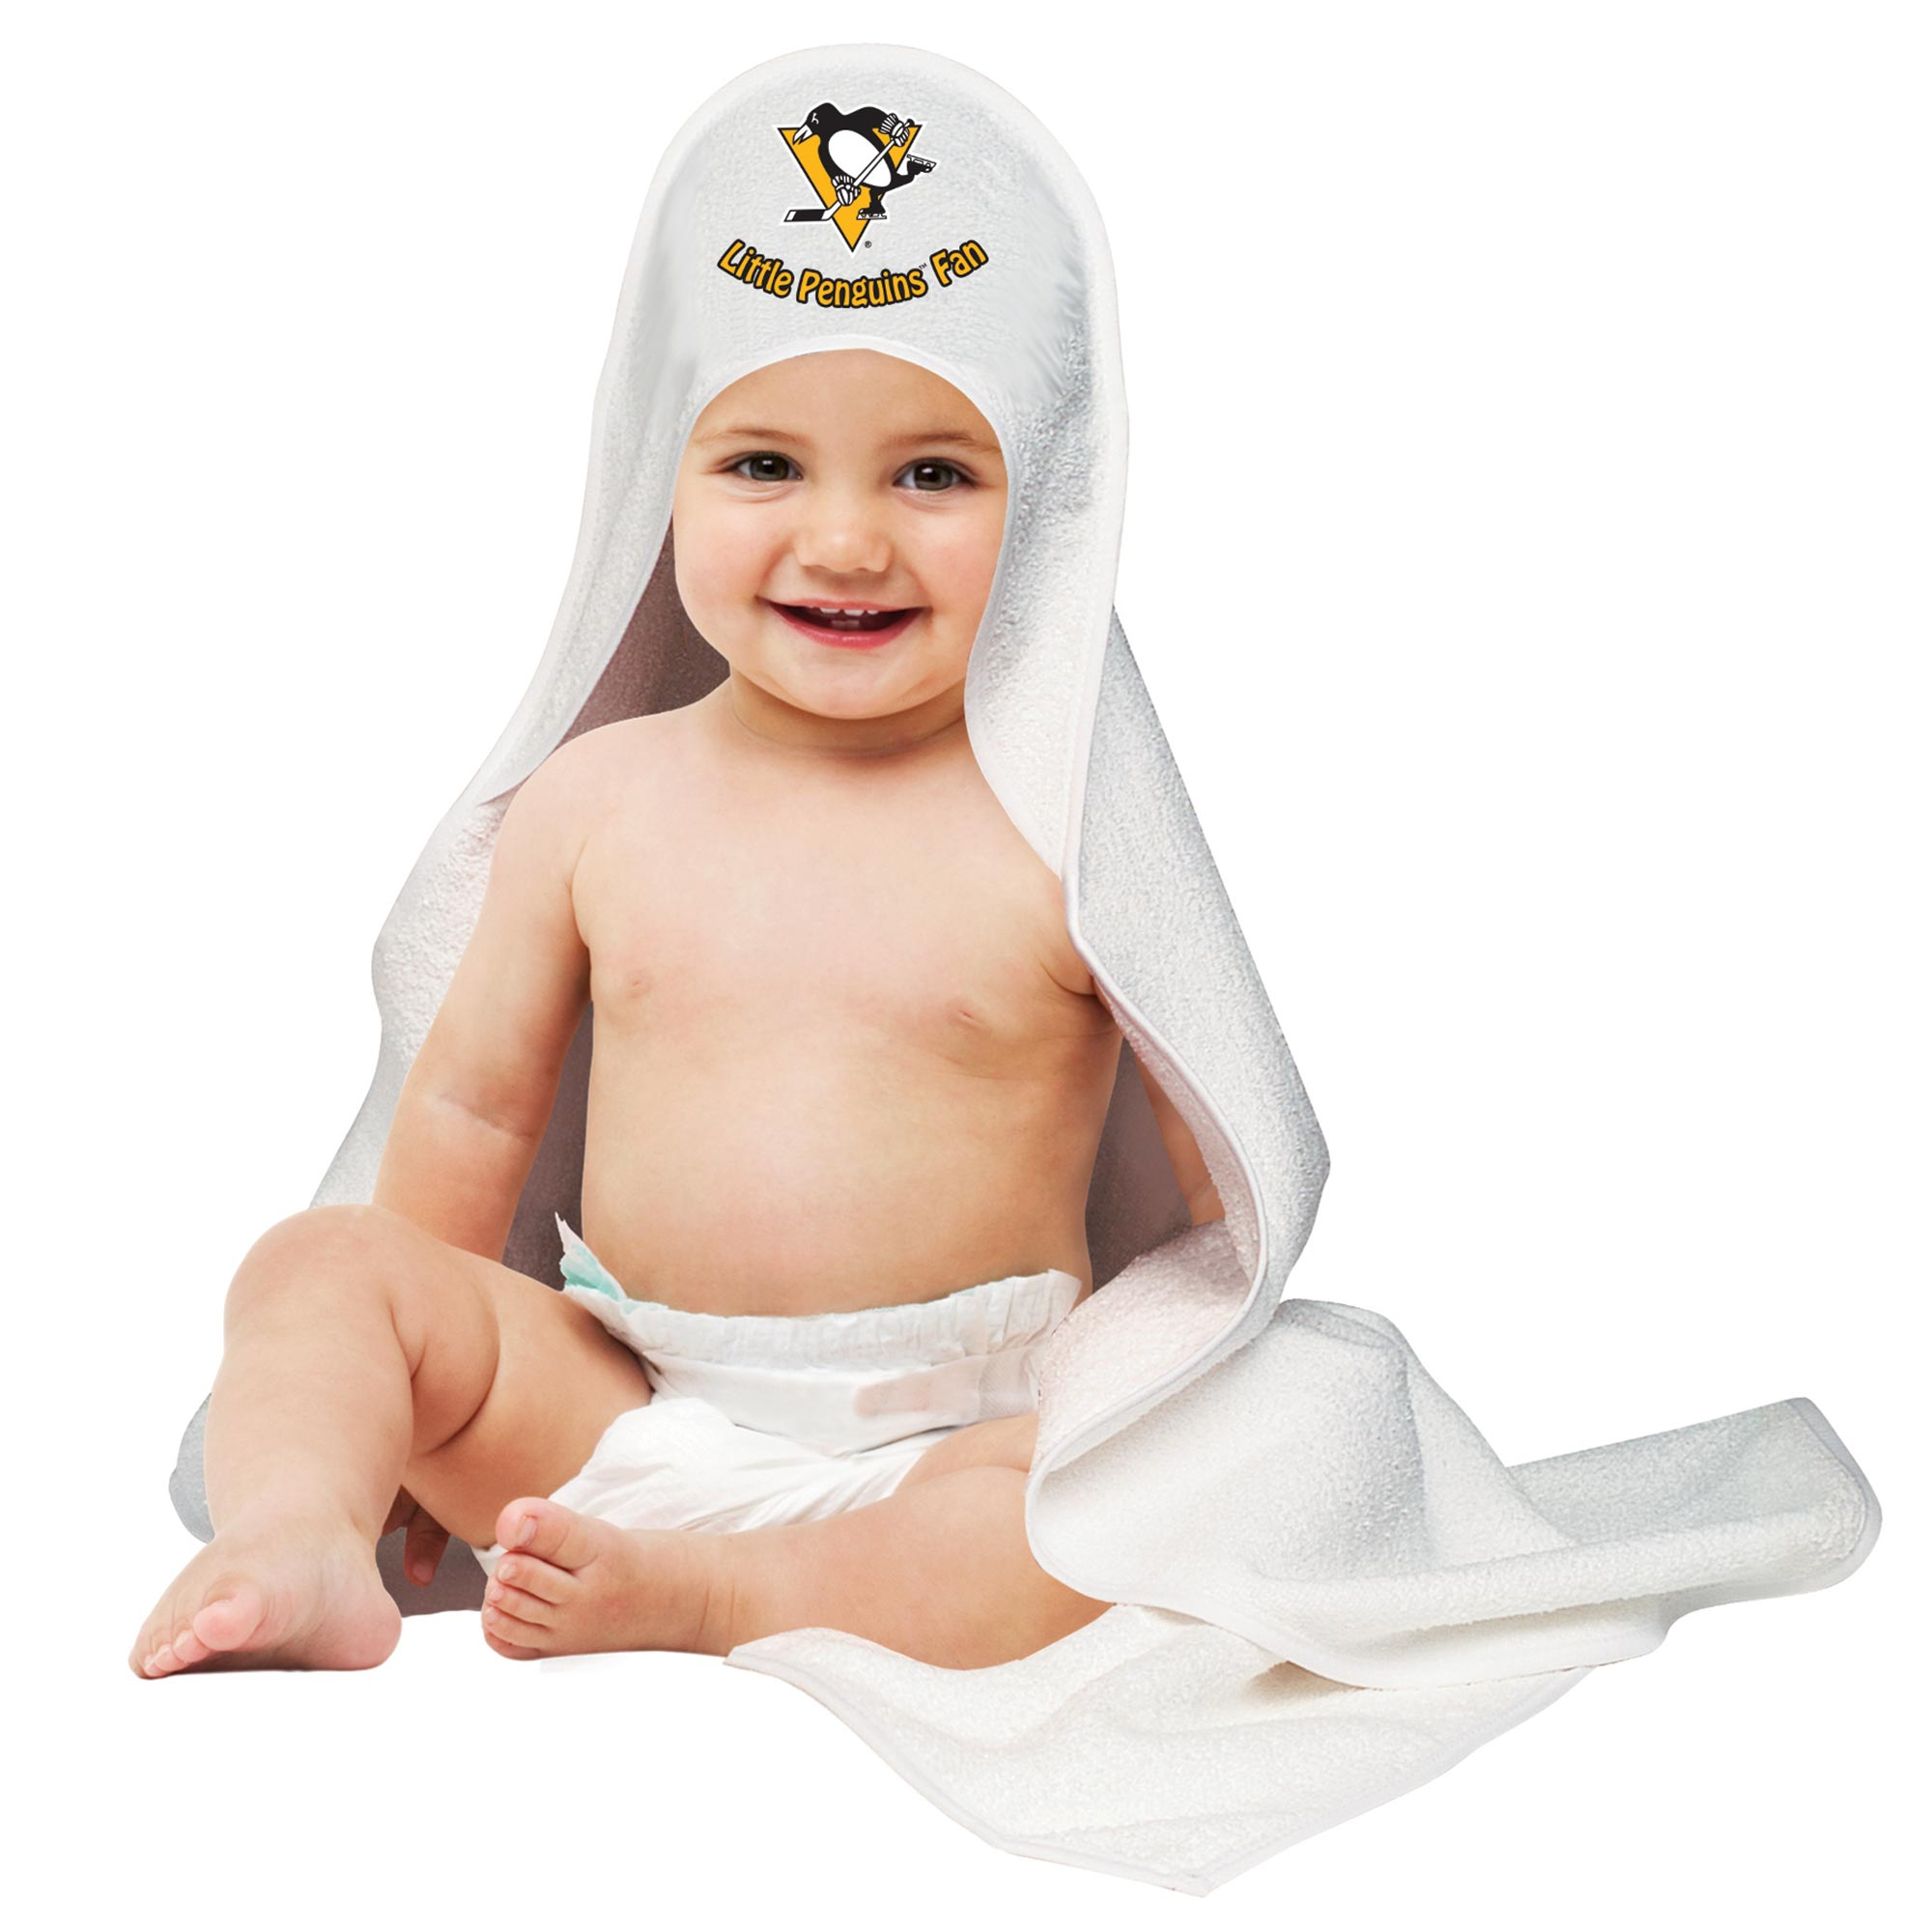 Pittsburgh Penguins Hooded Baby Towel